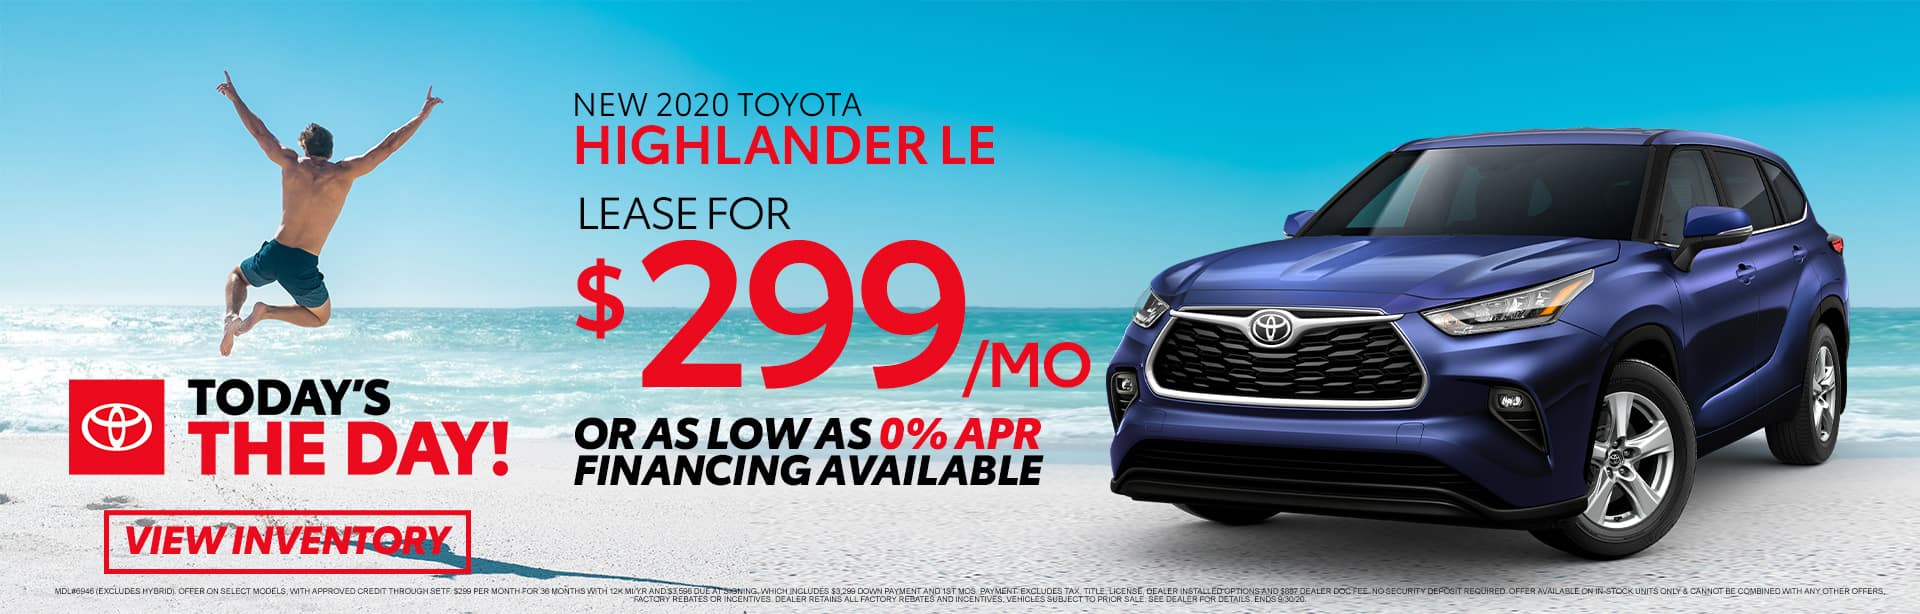 New 2020 Toyota Highlander LE at Toyota of Fort Walton Beach!